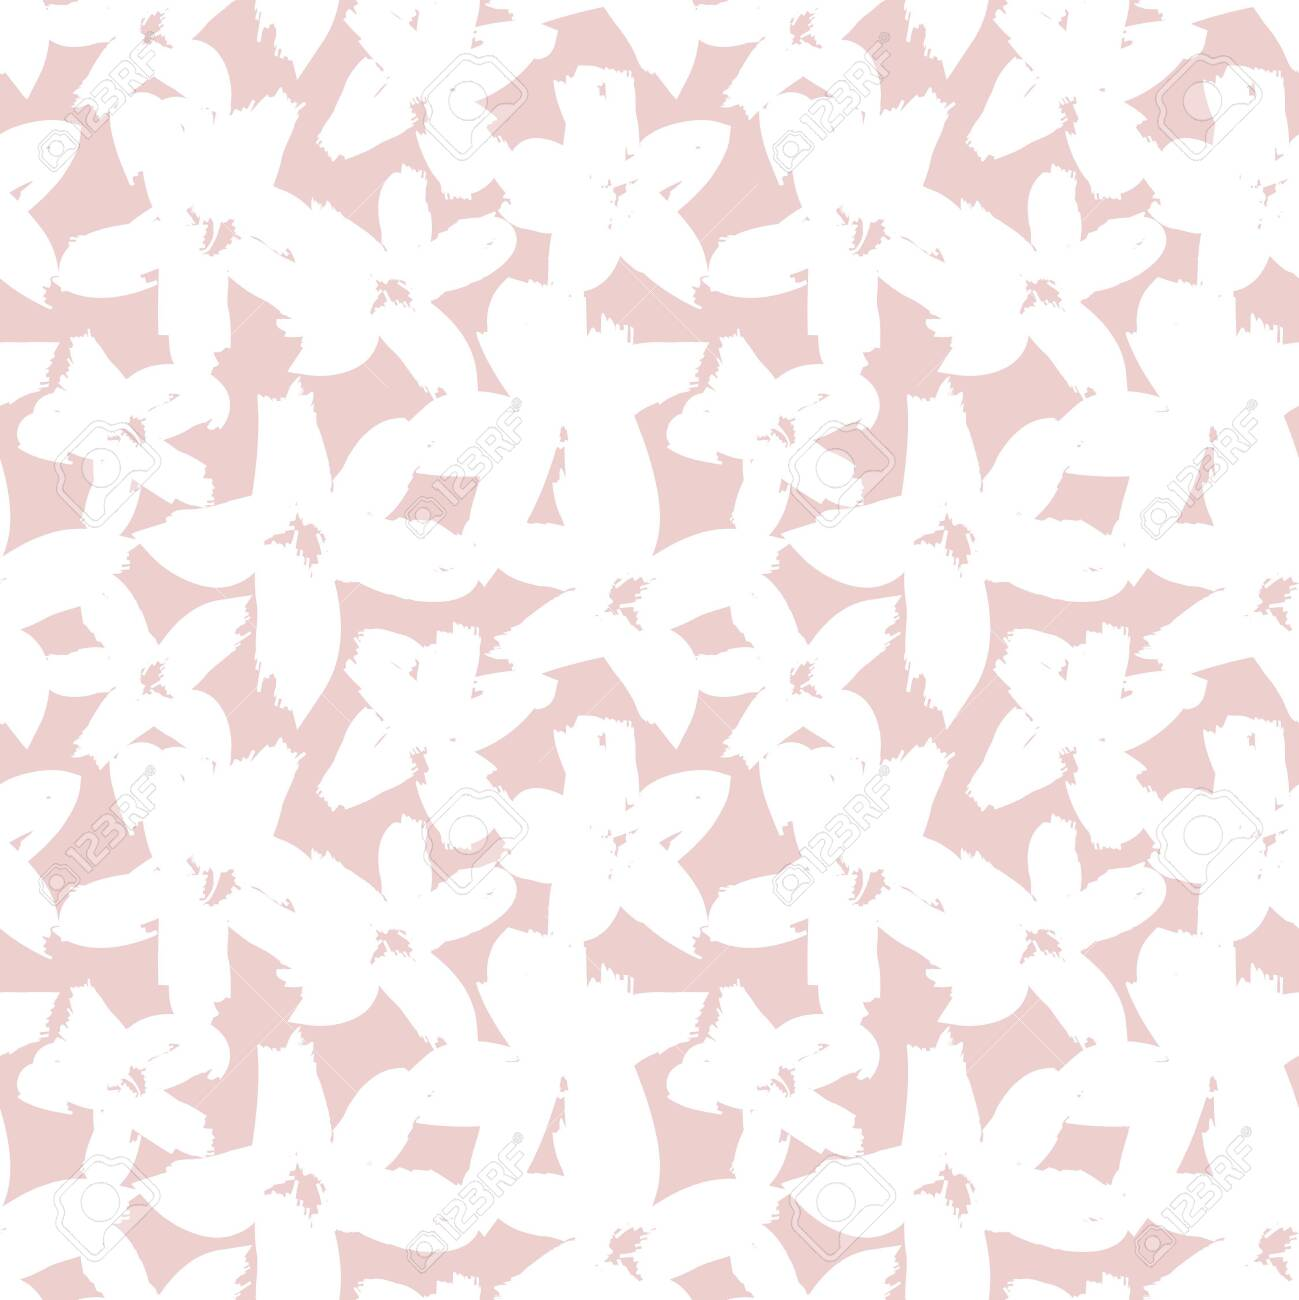 Pink Floral brush strokes seamless pattern background for fashion prints, graphics, backgrounds and crafts - 146462515